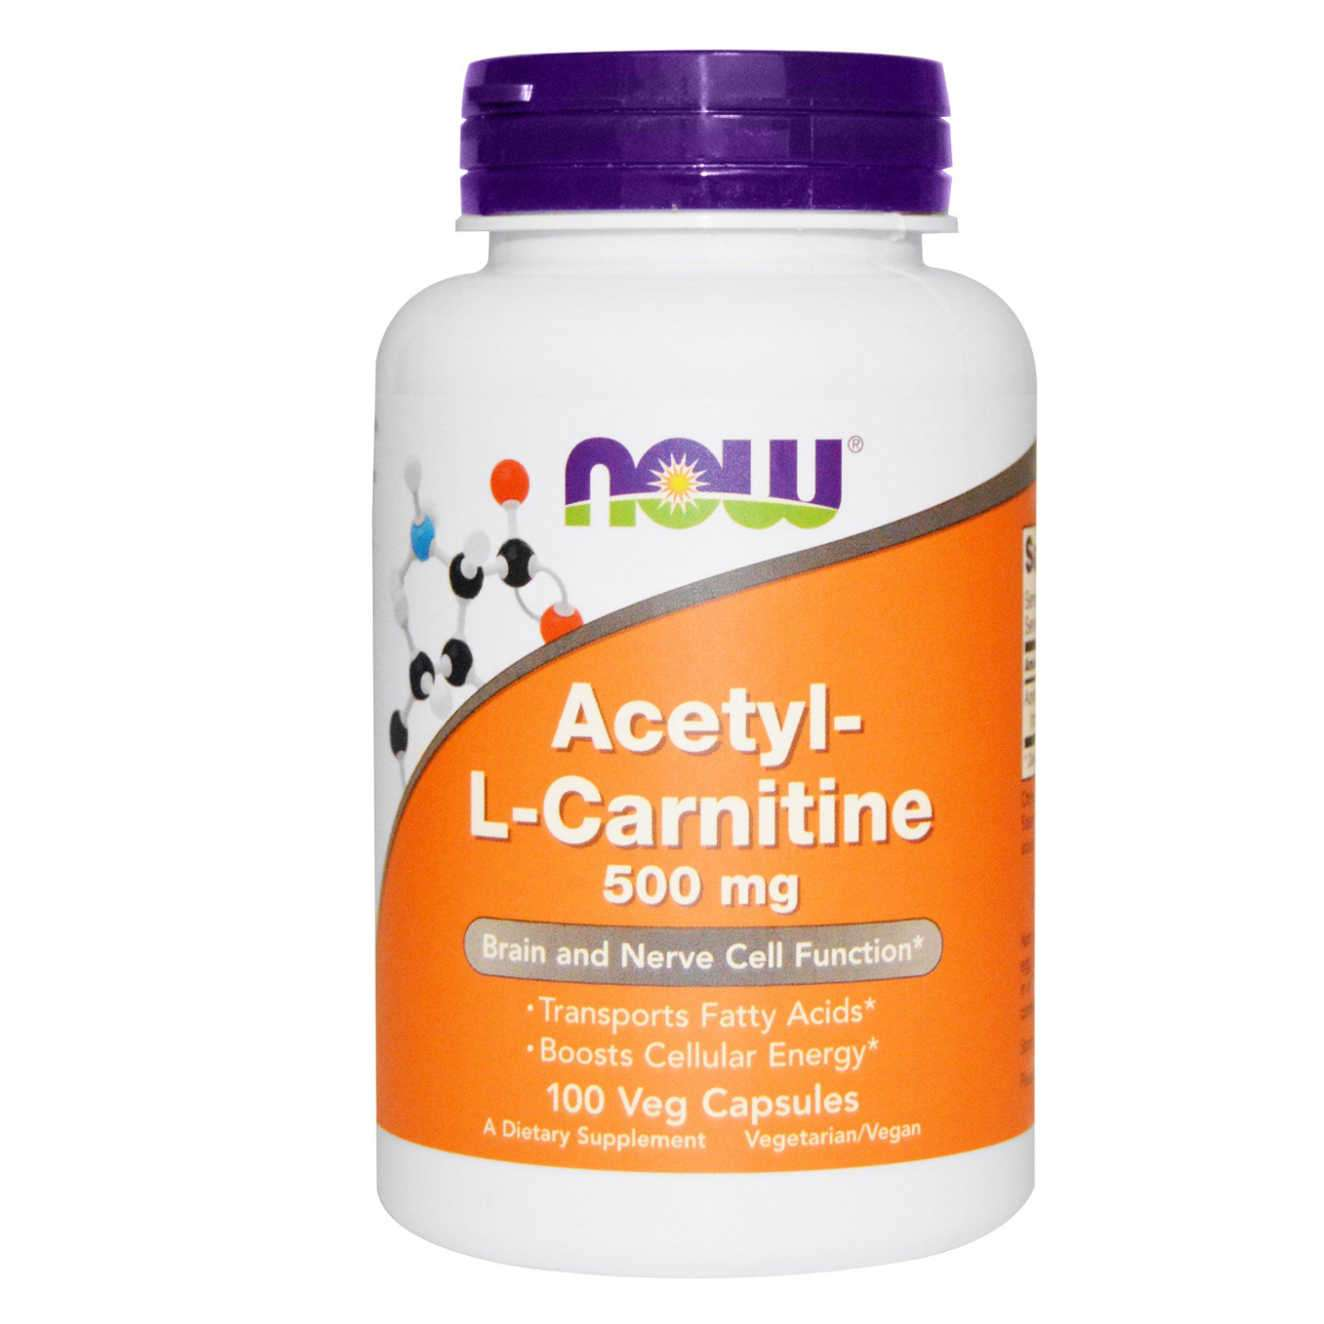 ACETYL L-CARNITINE - 500mg